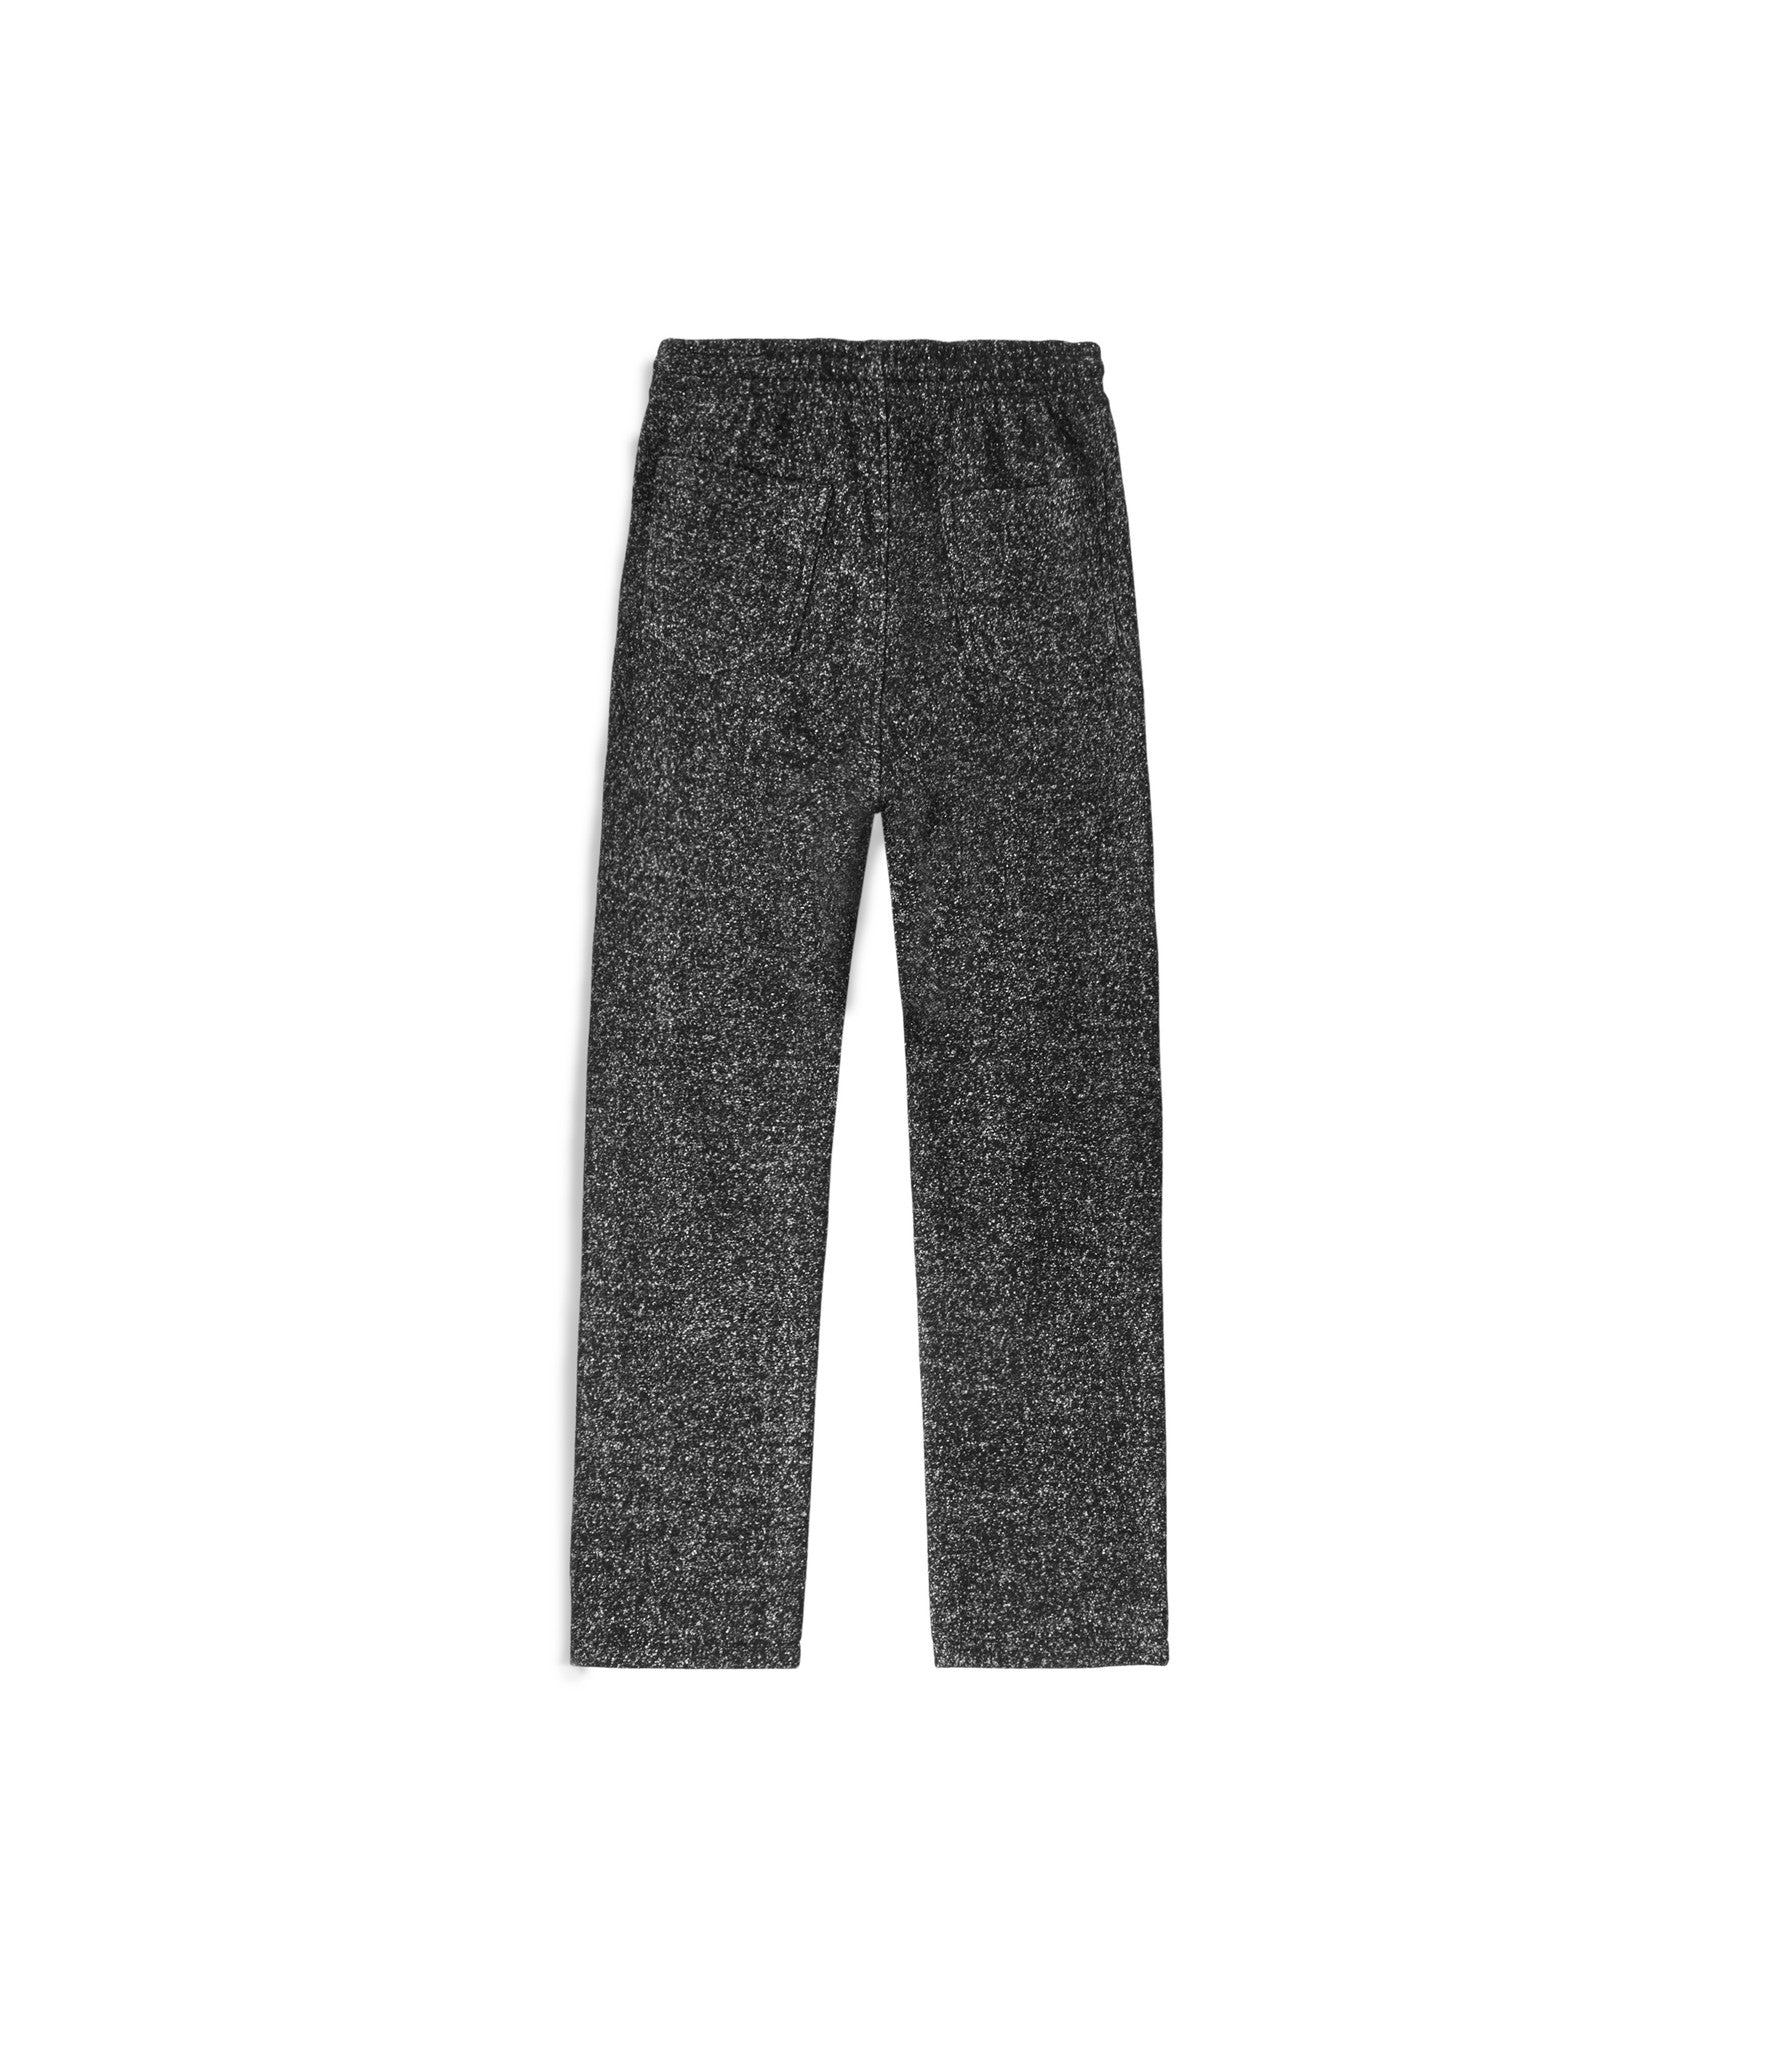 TR254 Mélange Wool Cropped Pants - Black - underated london - underatedco - 4